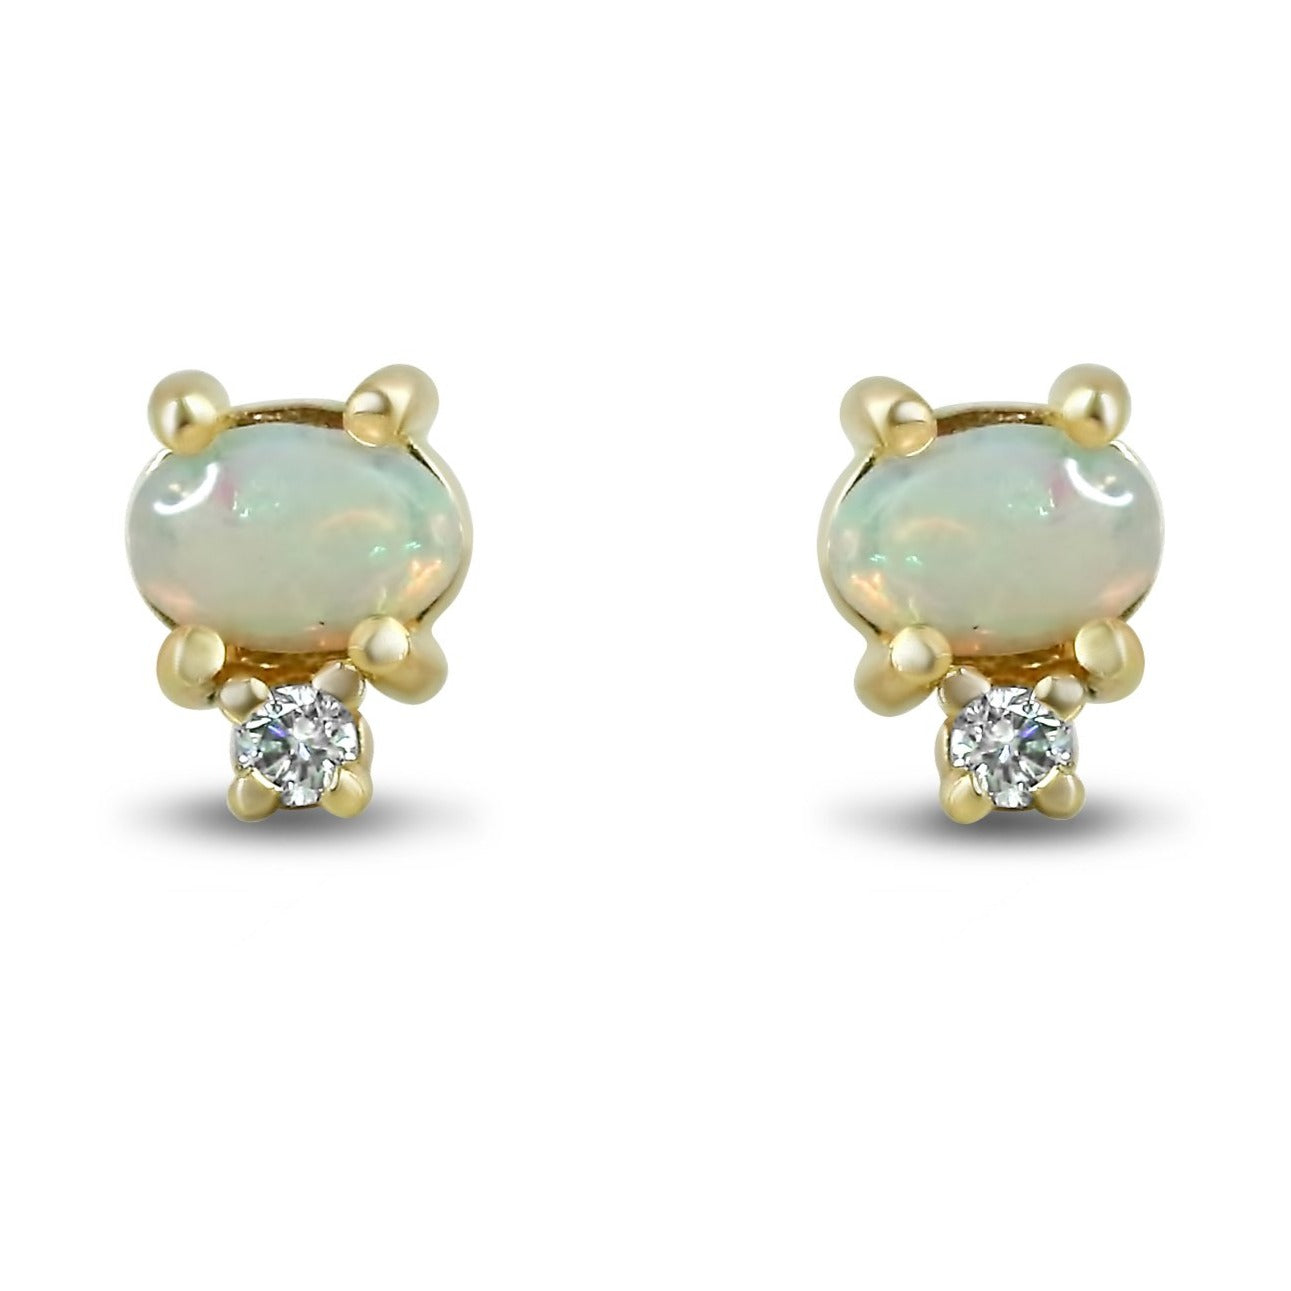 14k yellow gold cabochon cut opal and diamond stud earrings under $1,000